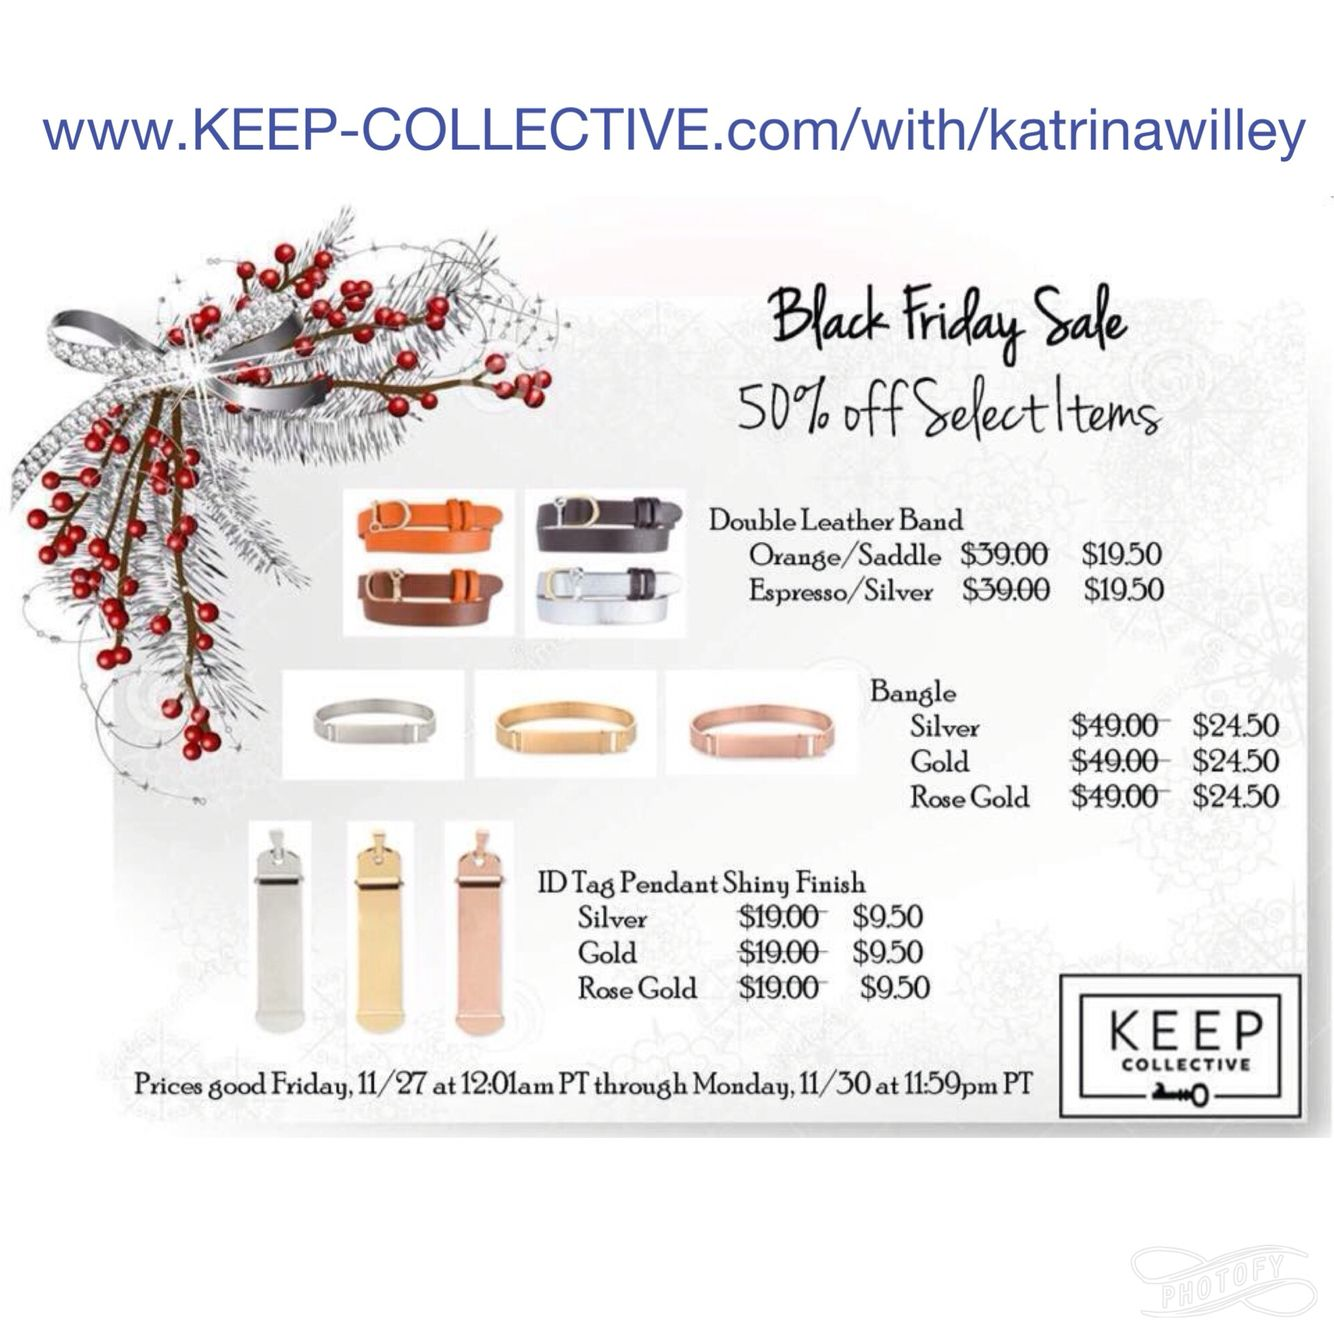 Black Friday sale! Keep collective www.keepcollective.com/with/katrinawilley #giftsforthosethsthaveeverything #halfpricejewelry #blackfriday